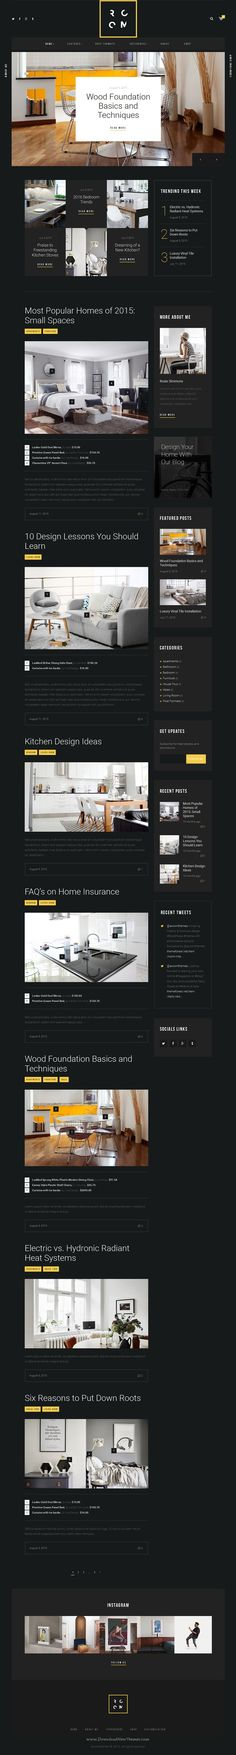 Skela Is An Awesome 5in1 Responsive WordPress Theme For Construction Architecture Building Interior Design Services Website Download Now Htt